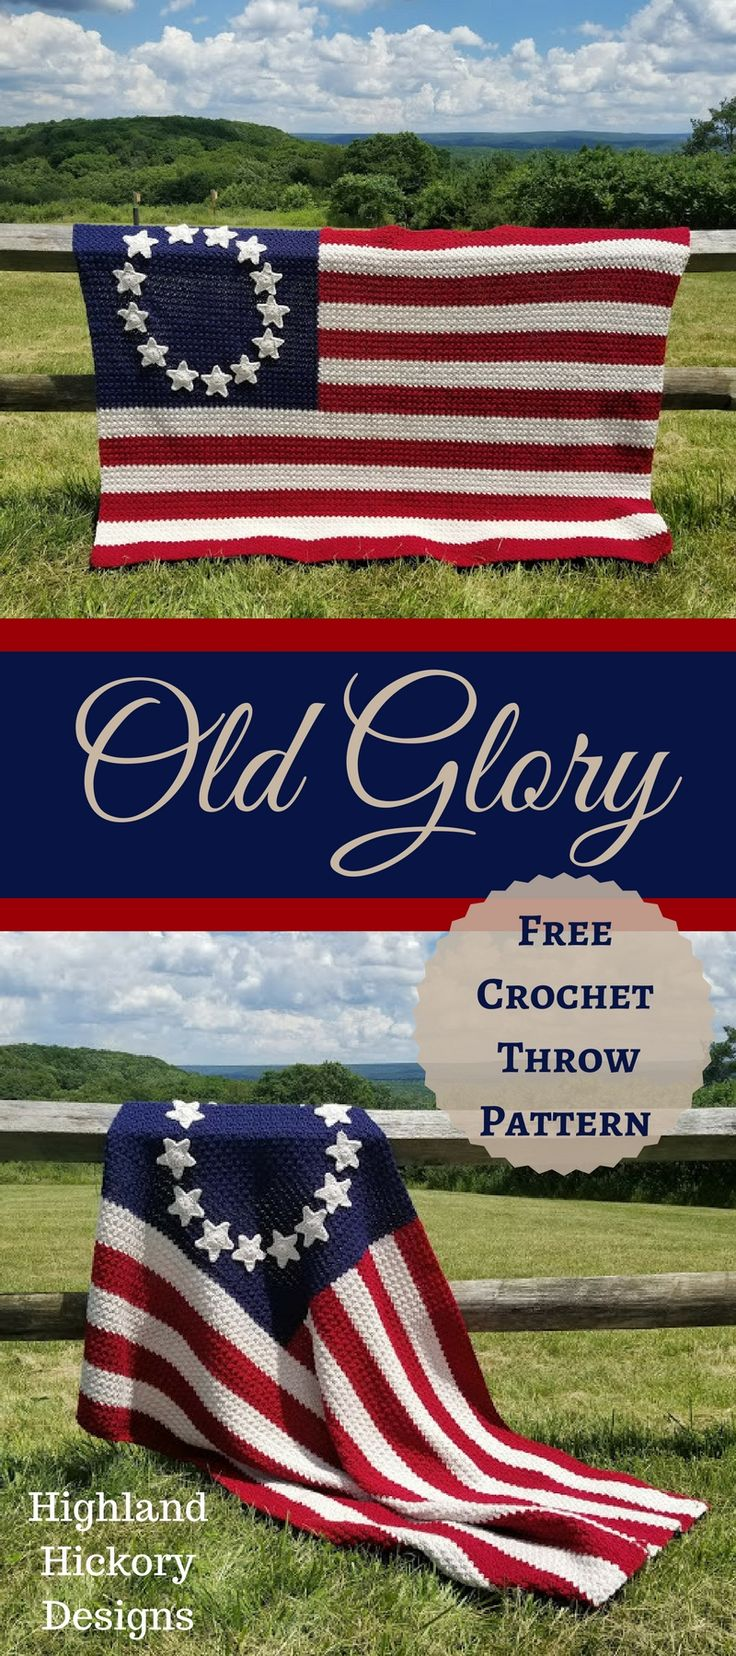 Old Glory free crochet Afghan pattern